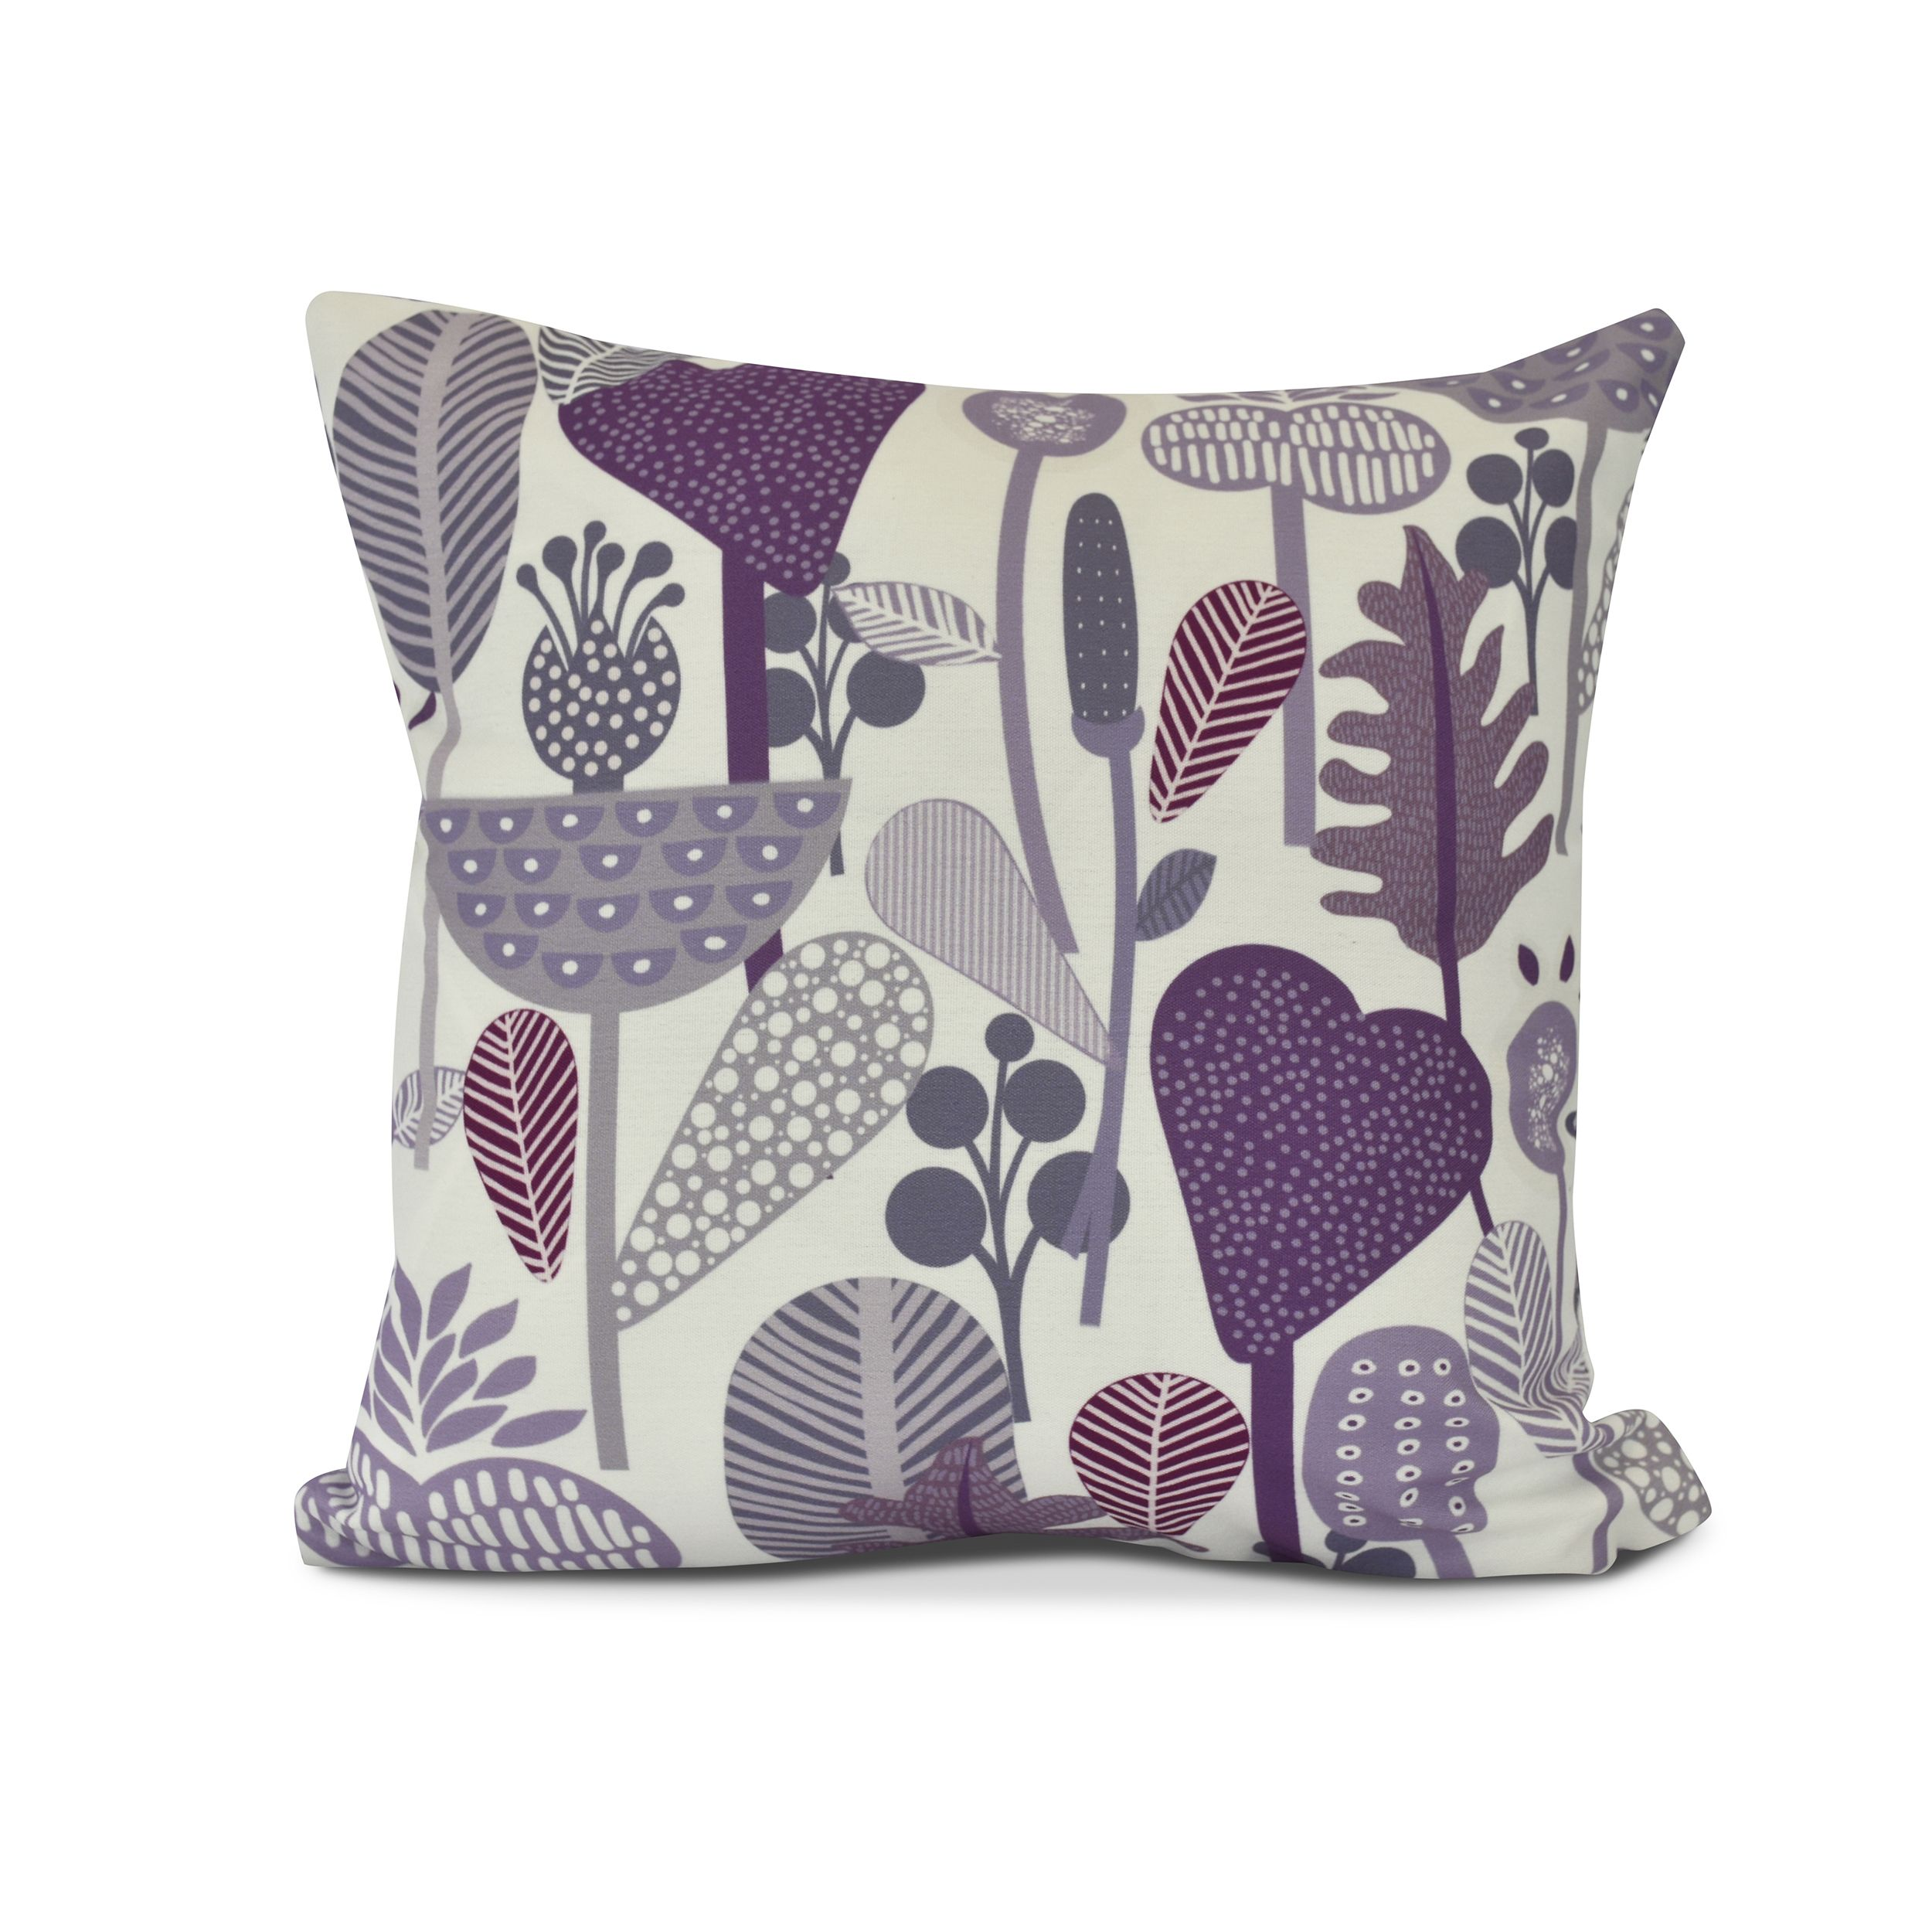 Pin By E By Design On Coastal Catch Purple Decorative Pillows Purple Pillows Pillows